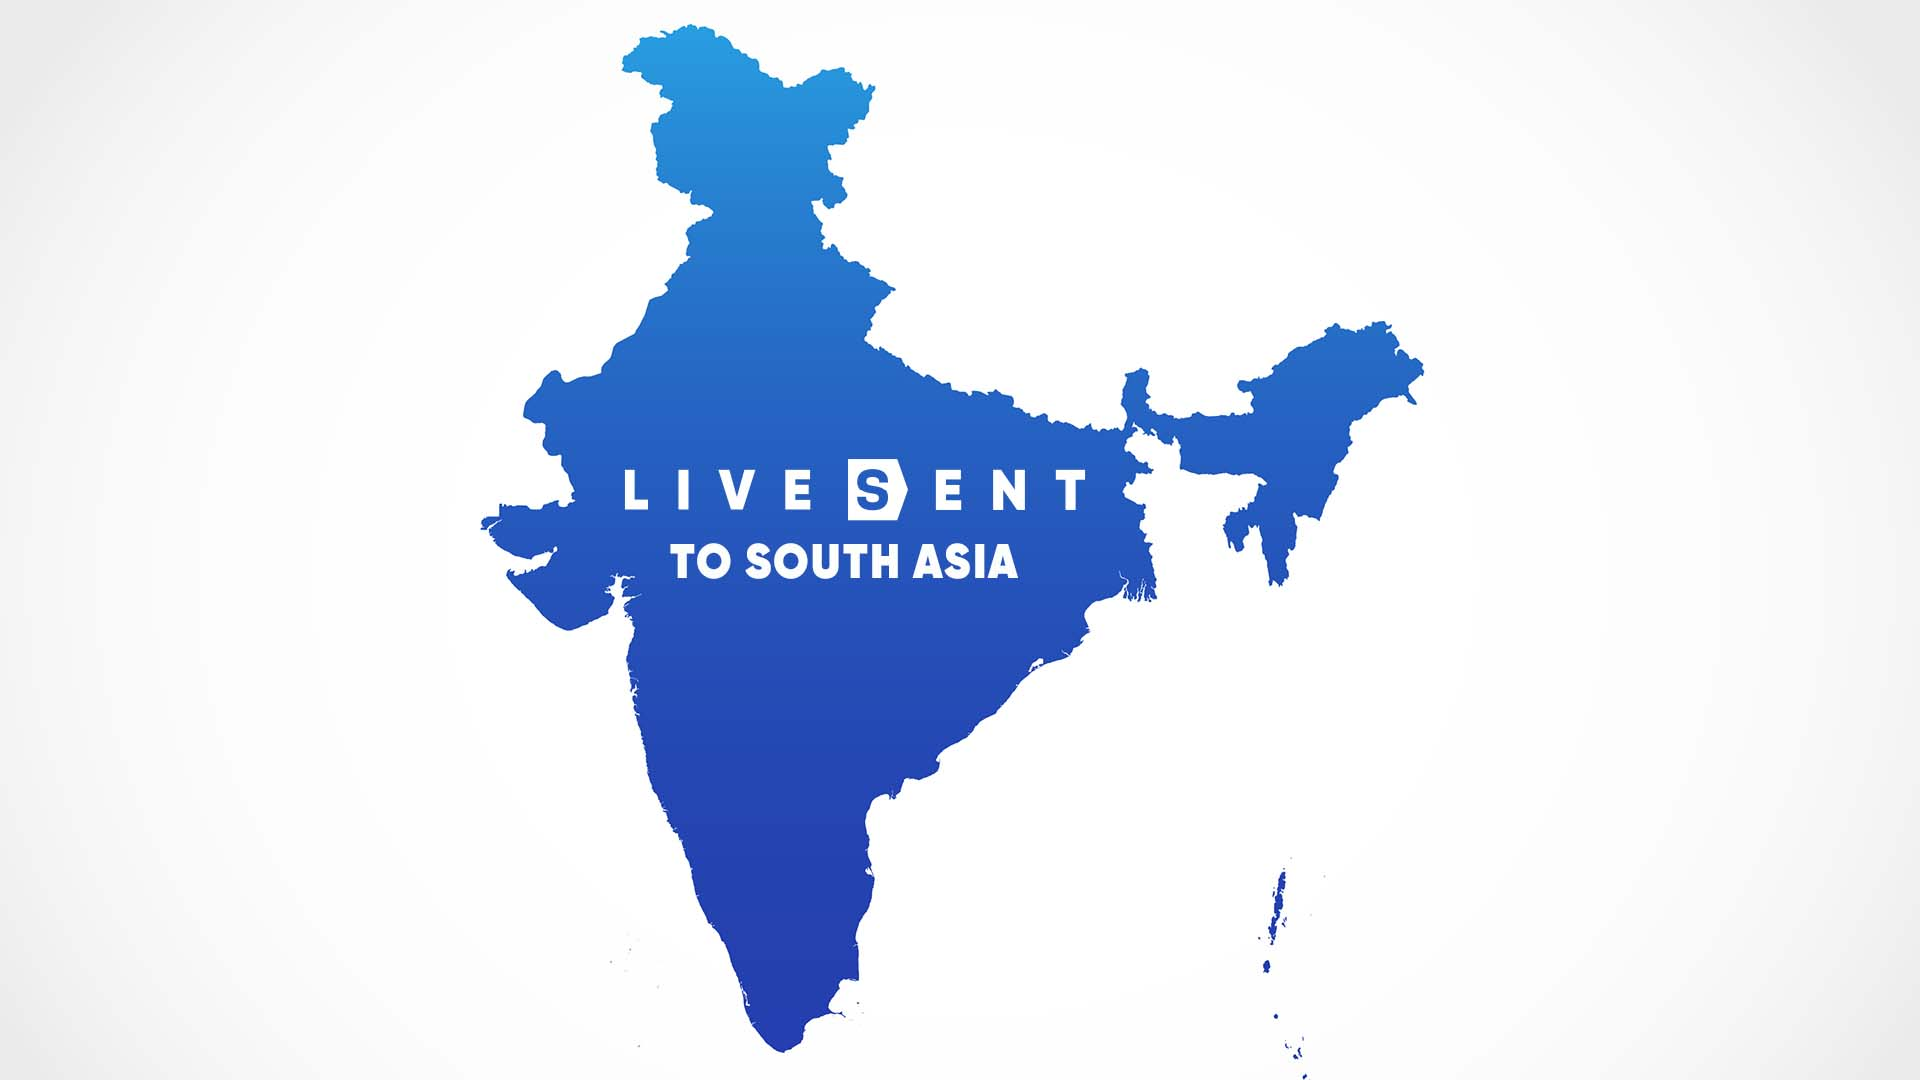 Live Sent to South Asia